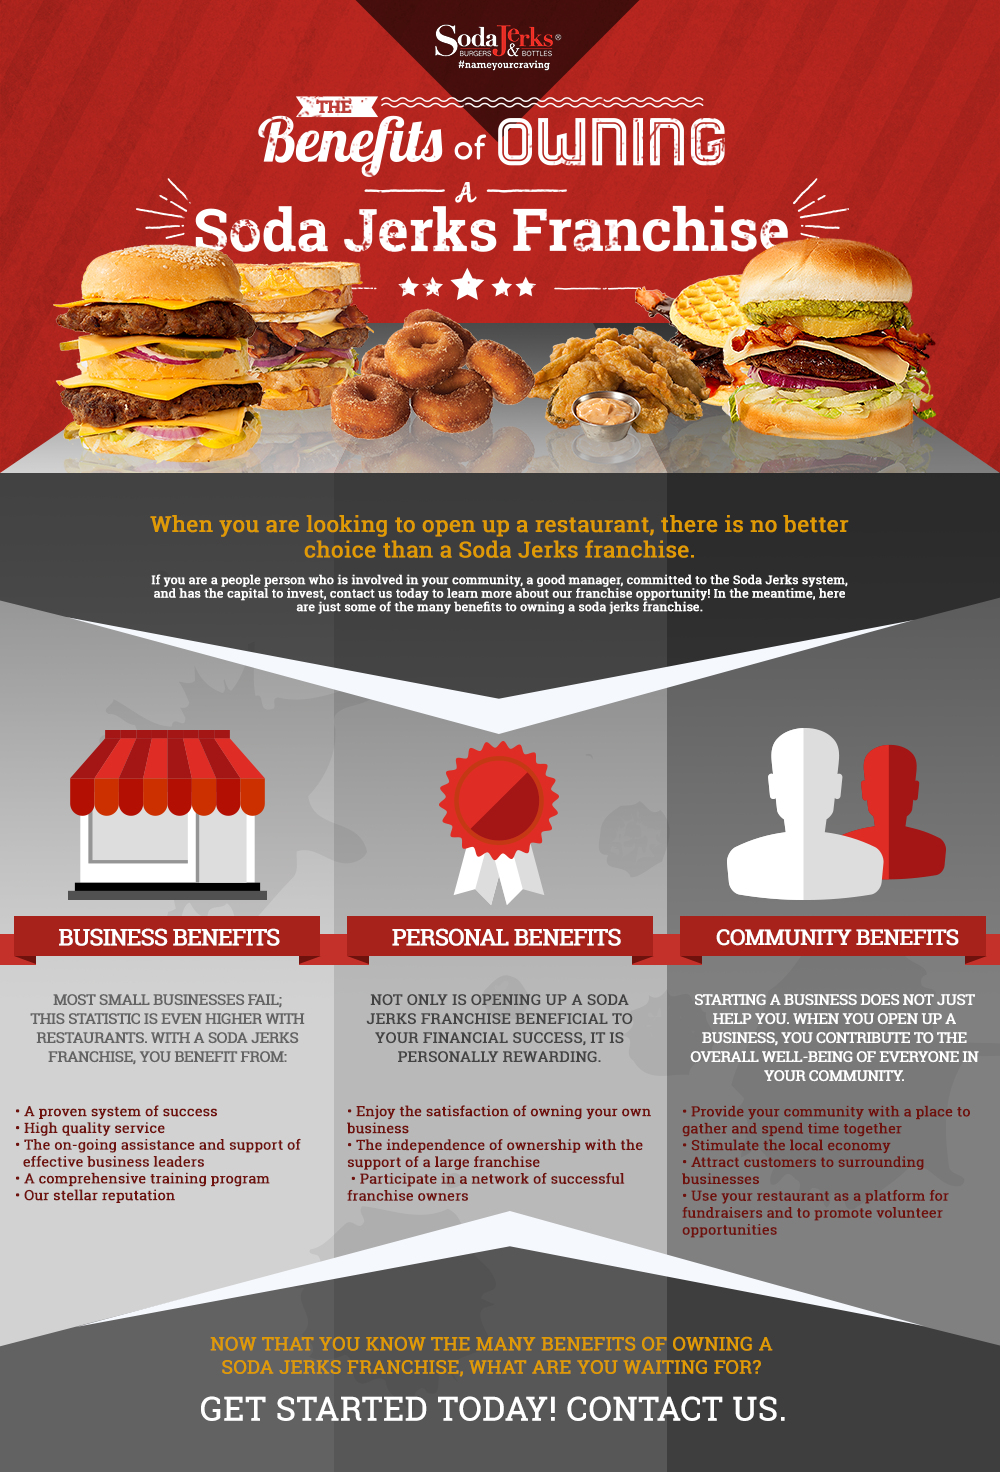 Information on Soda Jerks restaurant franchise